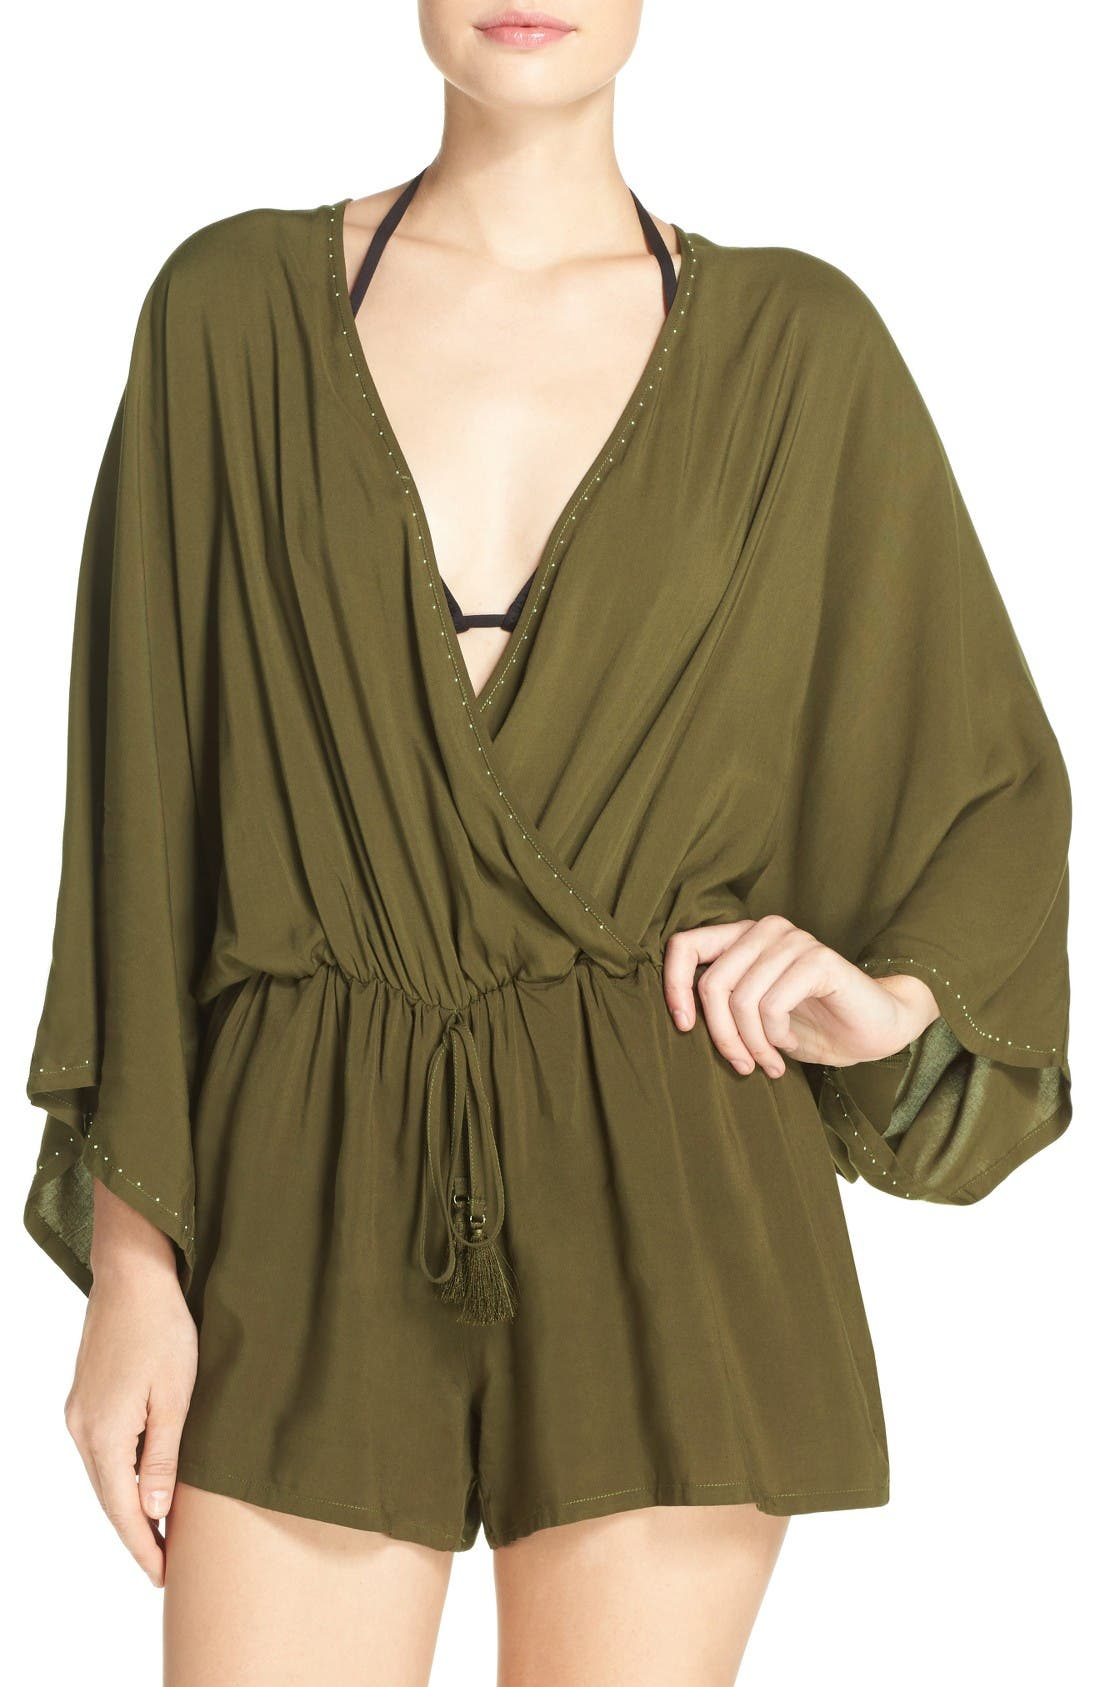 Alternate Image 1 Selected - Vince Camuto Cover-Up Romper